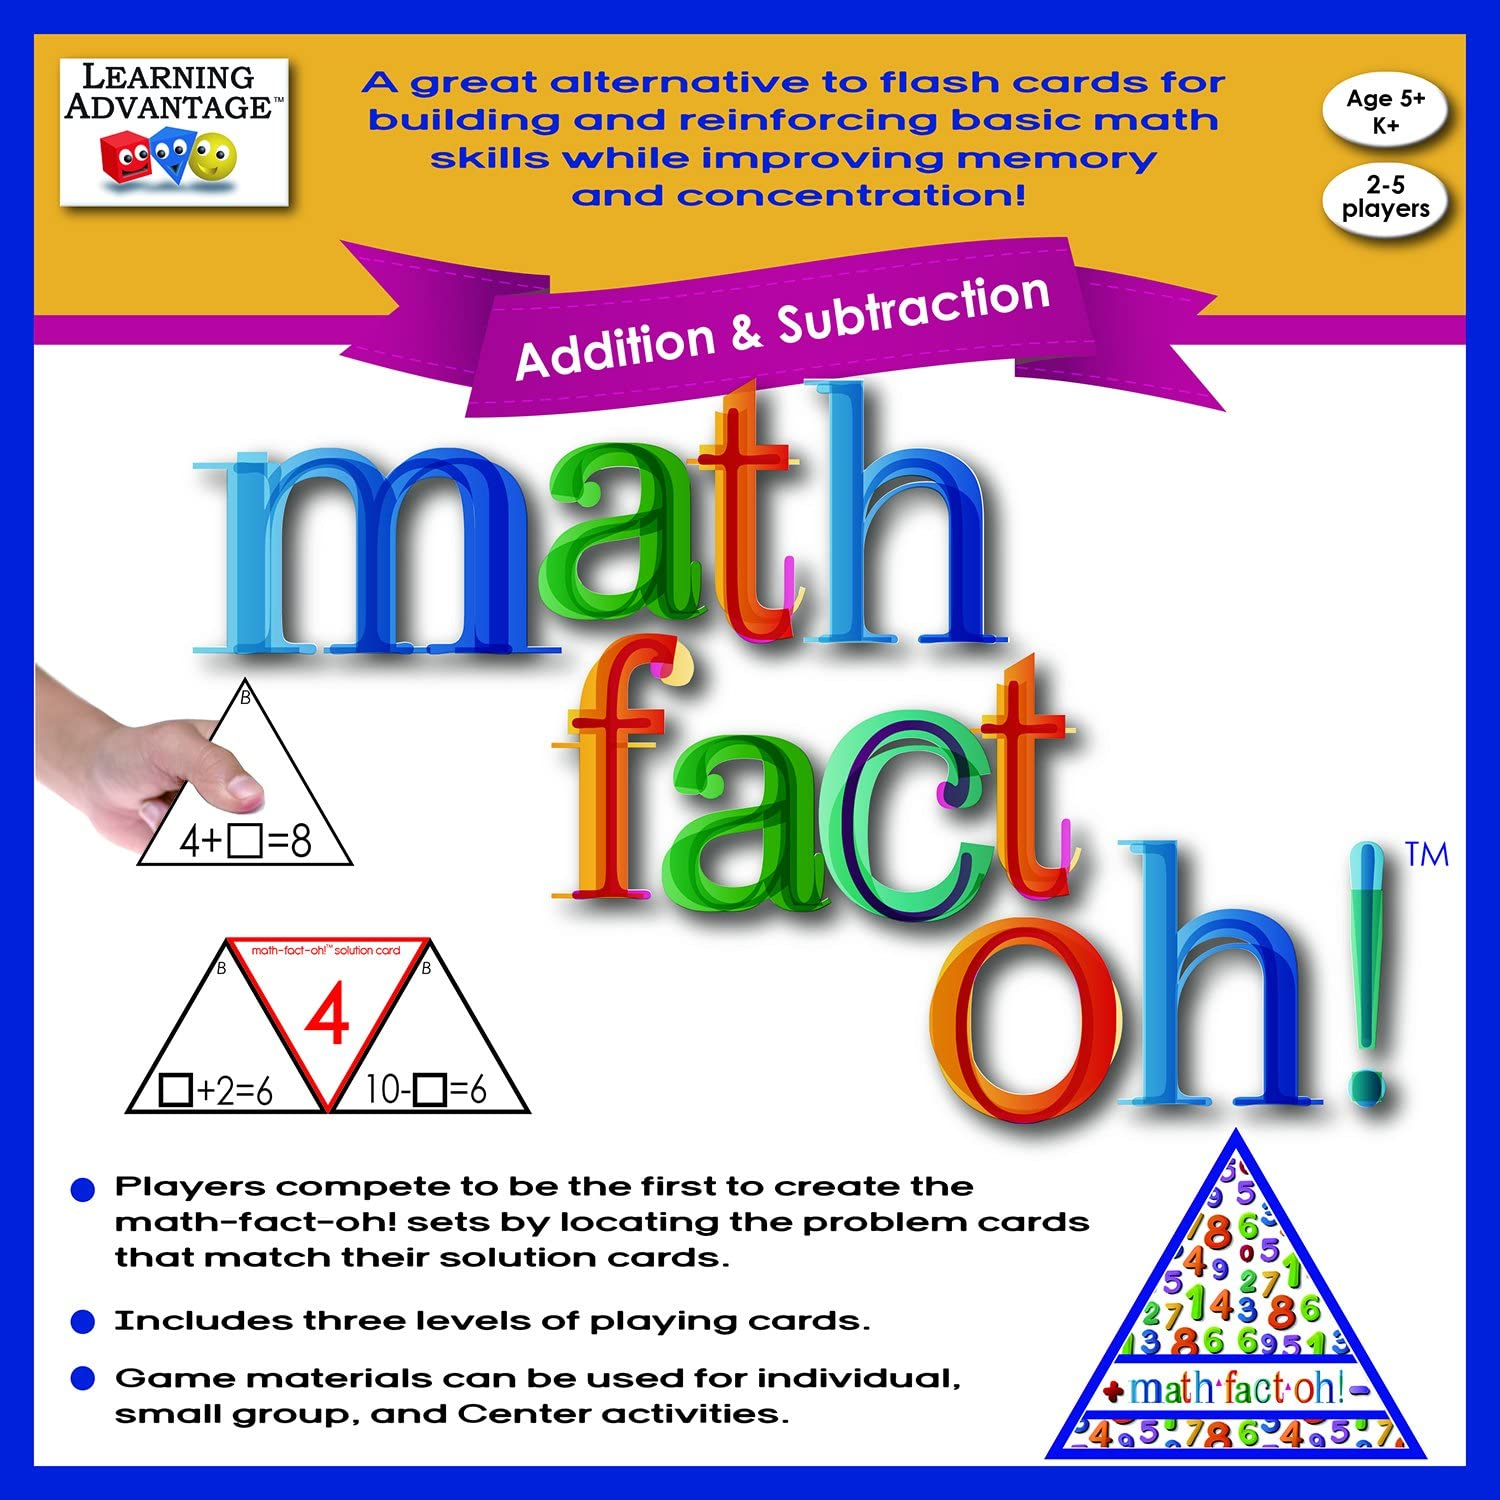 Learning Advantage 2163 math-fact-oh  Addition and Subtraction Game, Minimum Recommended Grade  Kindergarten